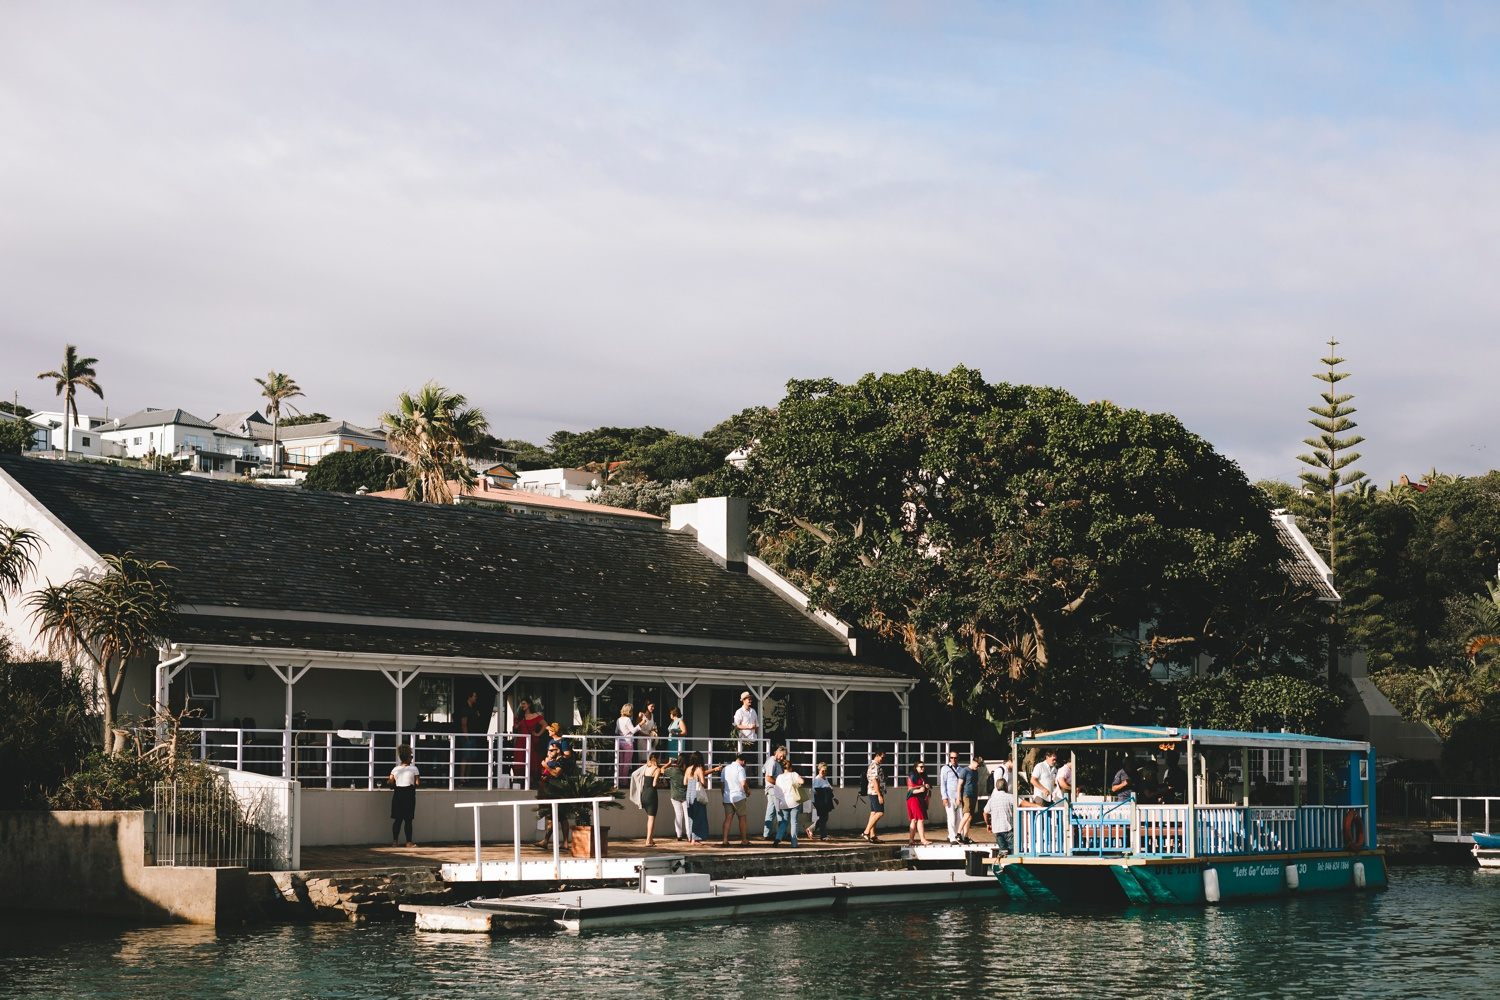 boat-trip-down-port-alfred-river-charlie-ray-photography